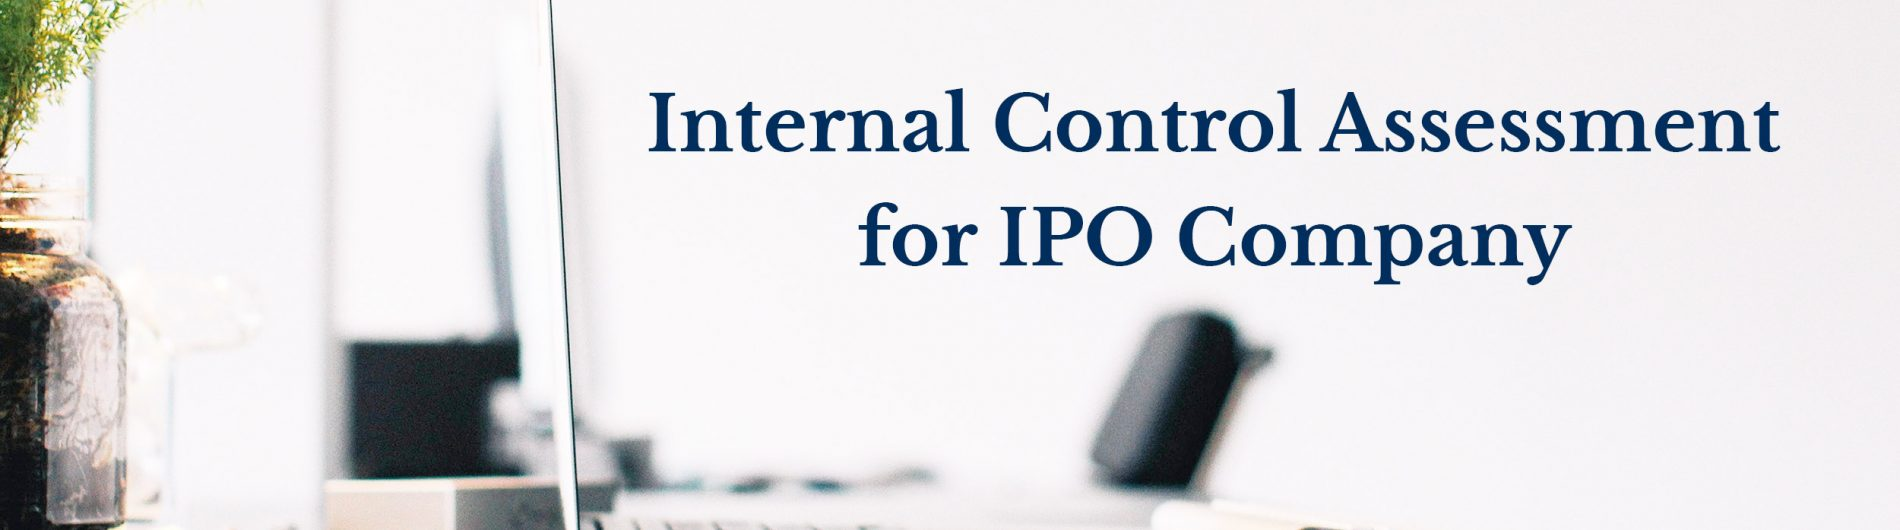 2 Internal Control Assessment